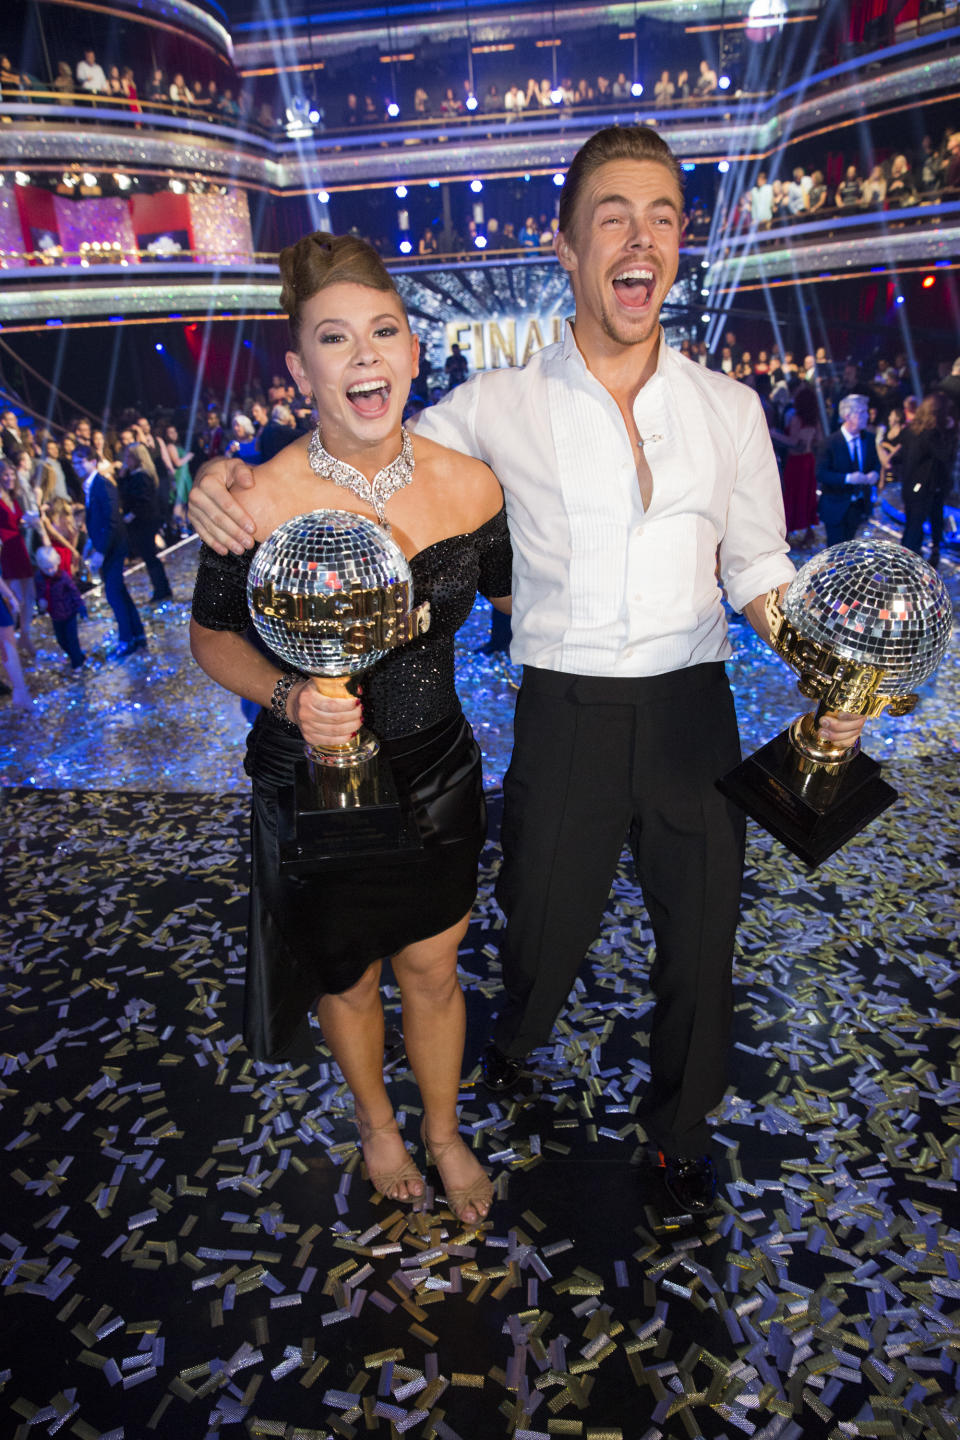 Bindi Irwin n black off the shoulder dress and Derek Hough holding the Dancing With The Stars trophies during the two-hour season finale of Dancing with the Stars